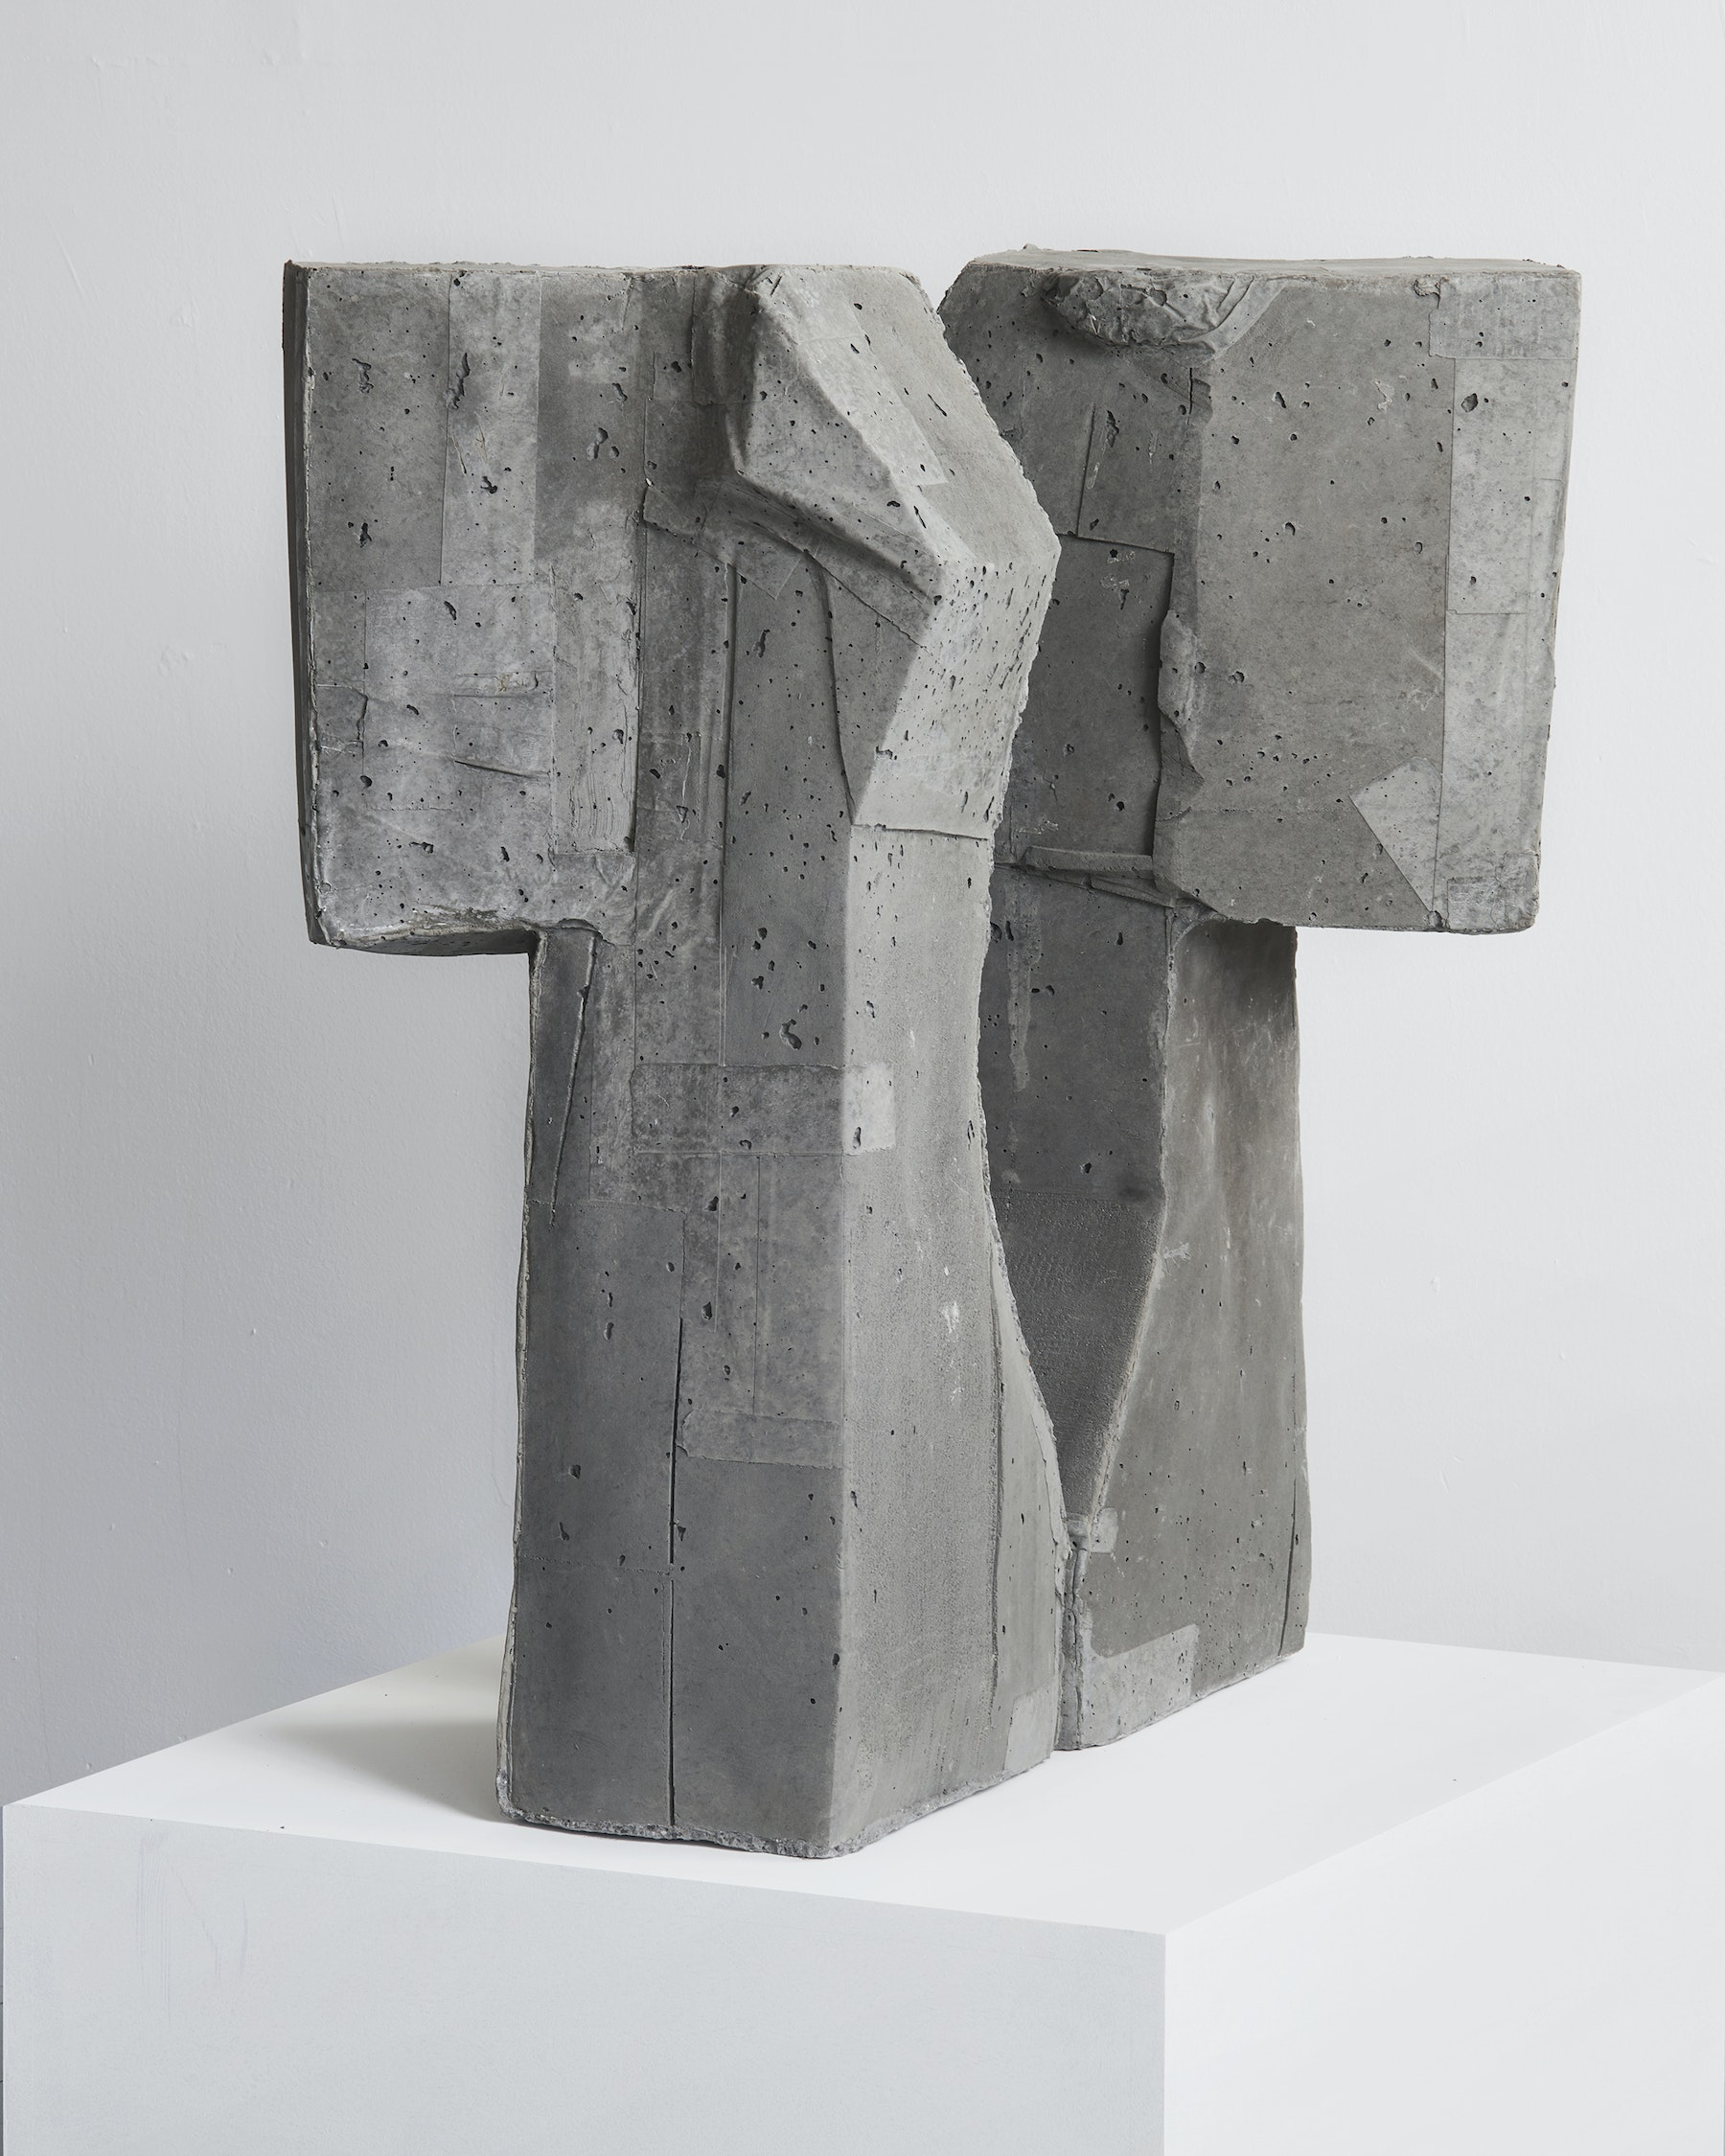 "Arlene Shechet ""Twins,"" 2019 Concrete 33.25 x 18 x 12.5"" [HxWxD] (84.45 x 45.72 x 31.75 cm) each sculpture Inventory #SHE146 Courtesy of the artist and Vielmetter Los Angeles. © Arlene Shechet Photo credit: Robert Wedemeyer"